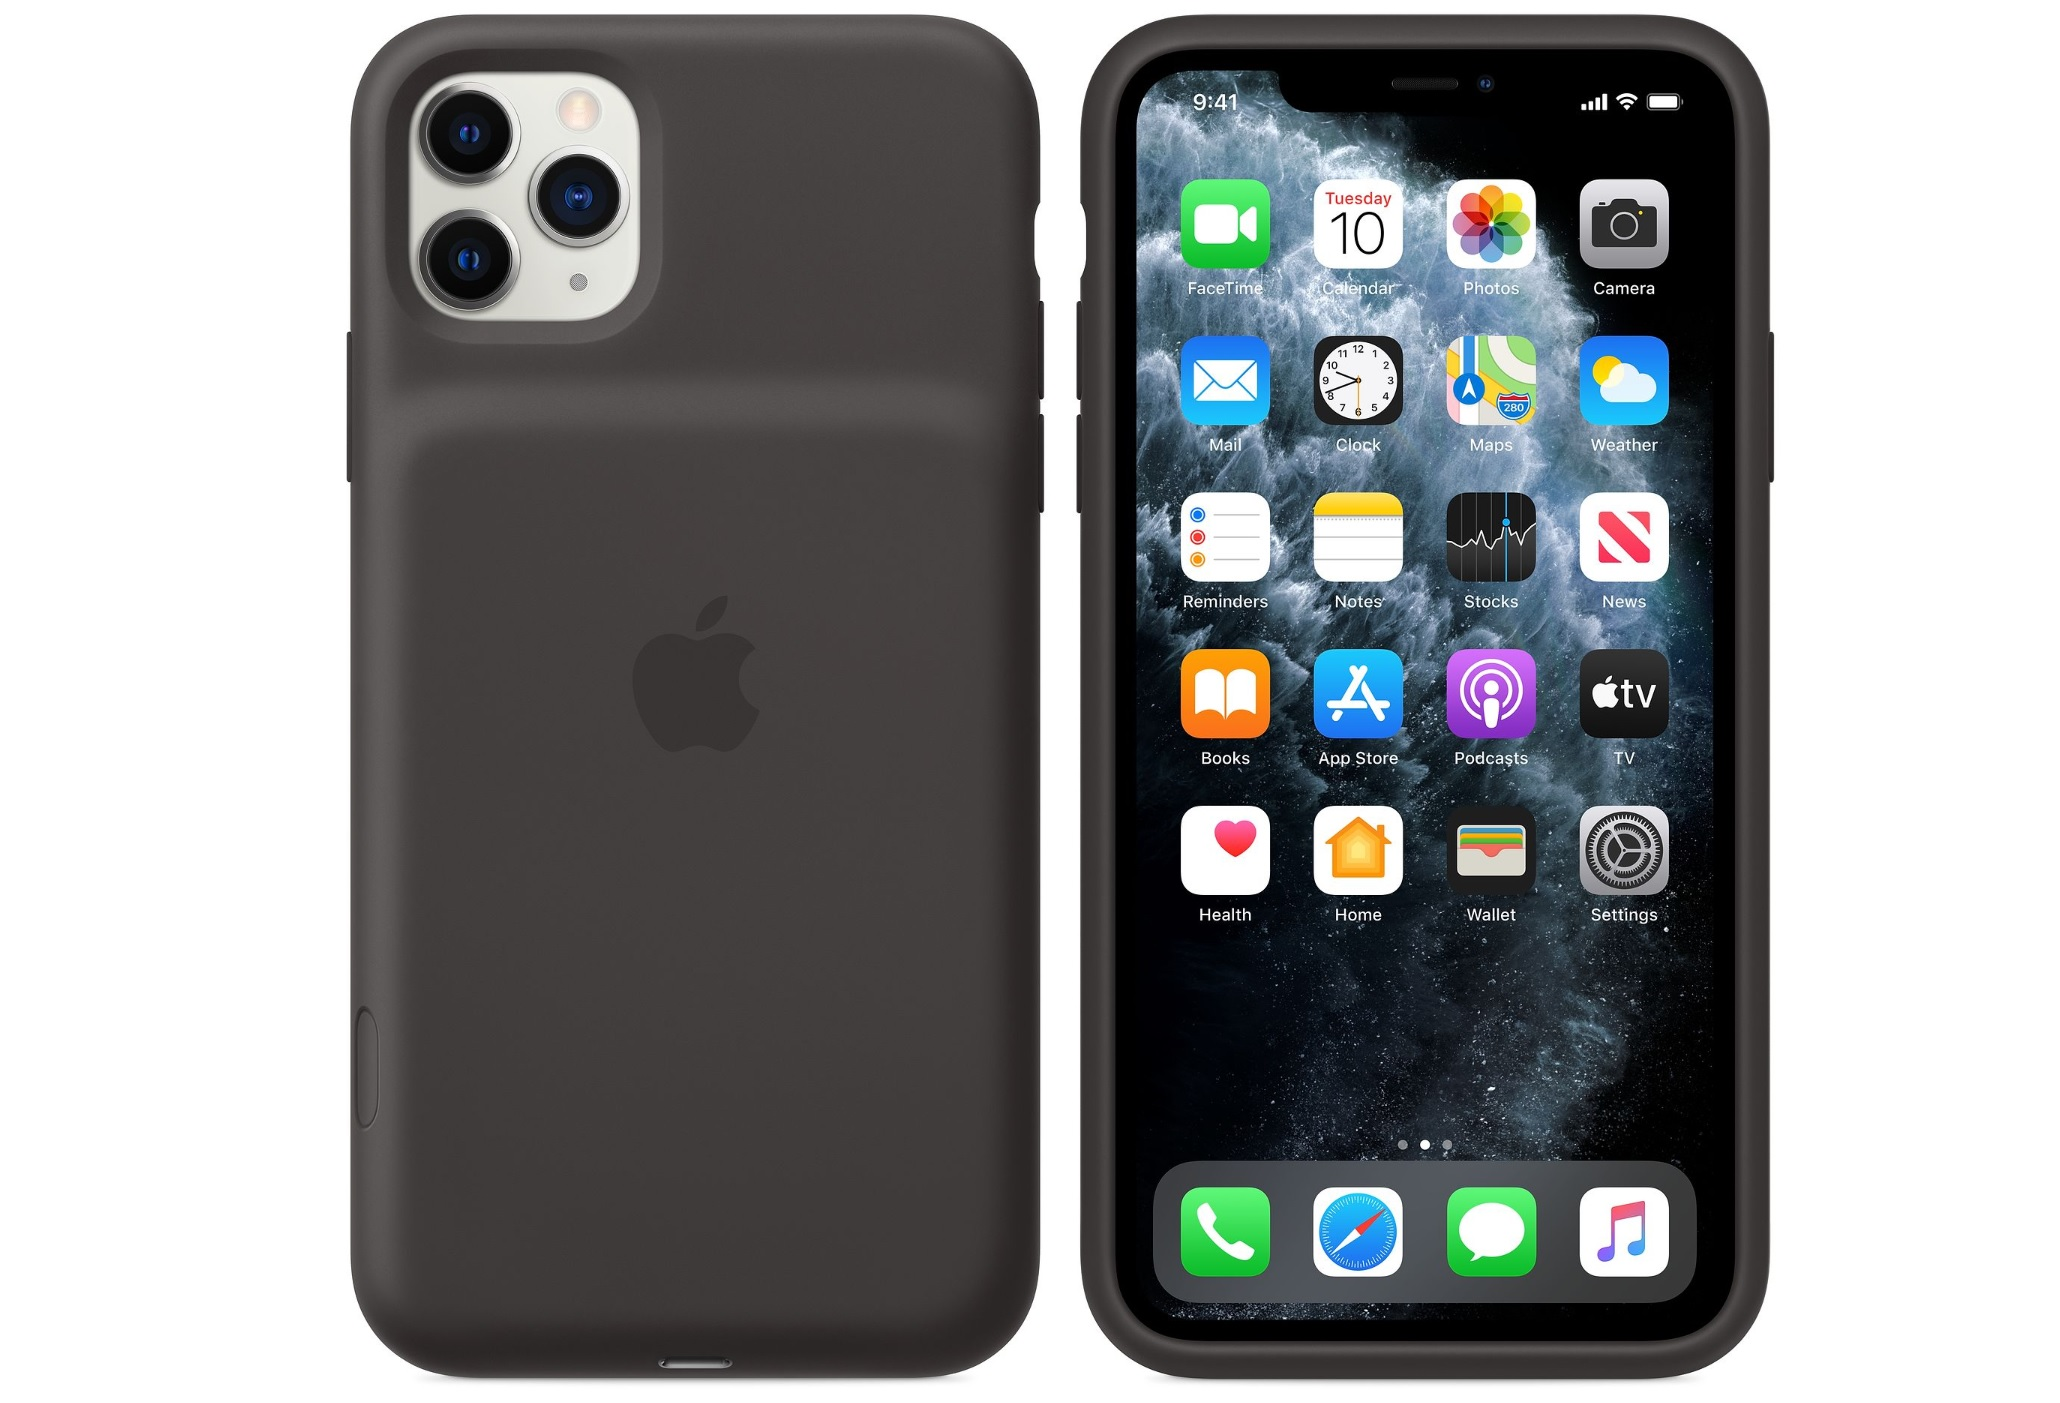 Apple releases Smart Battery Case with wireless charging for